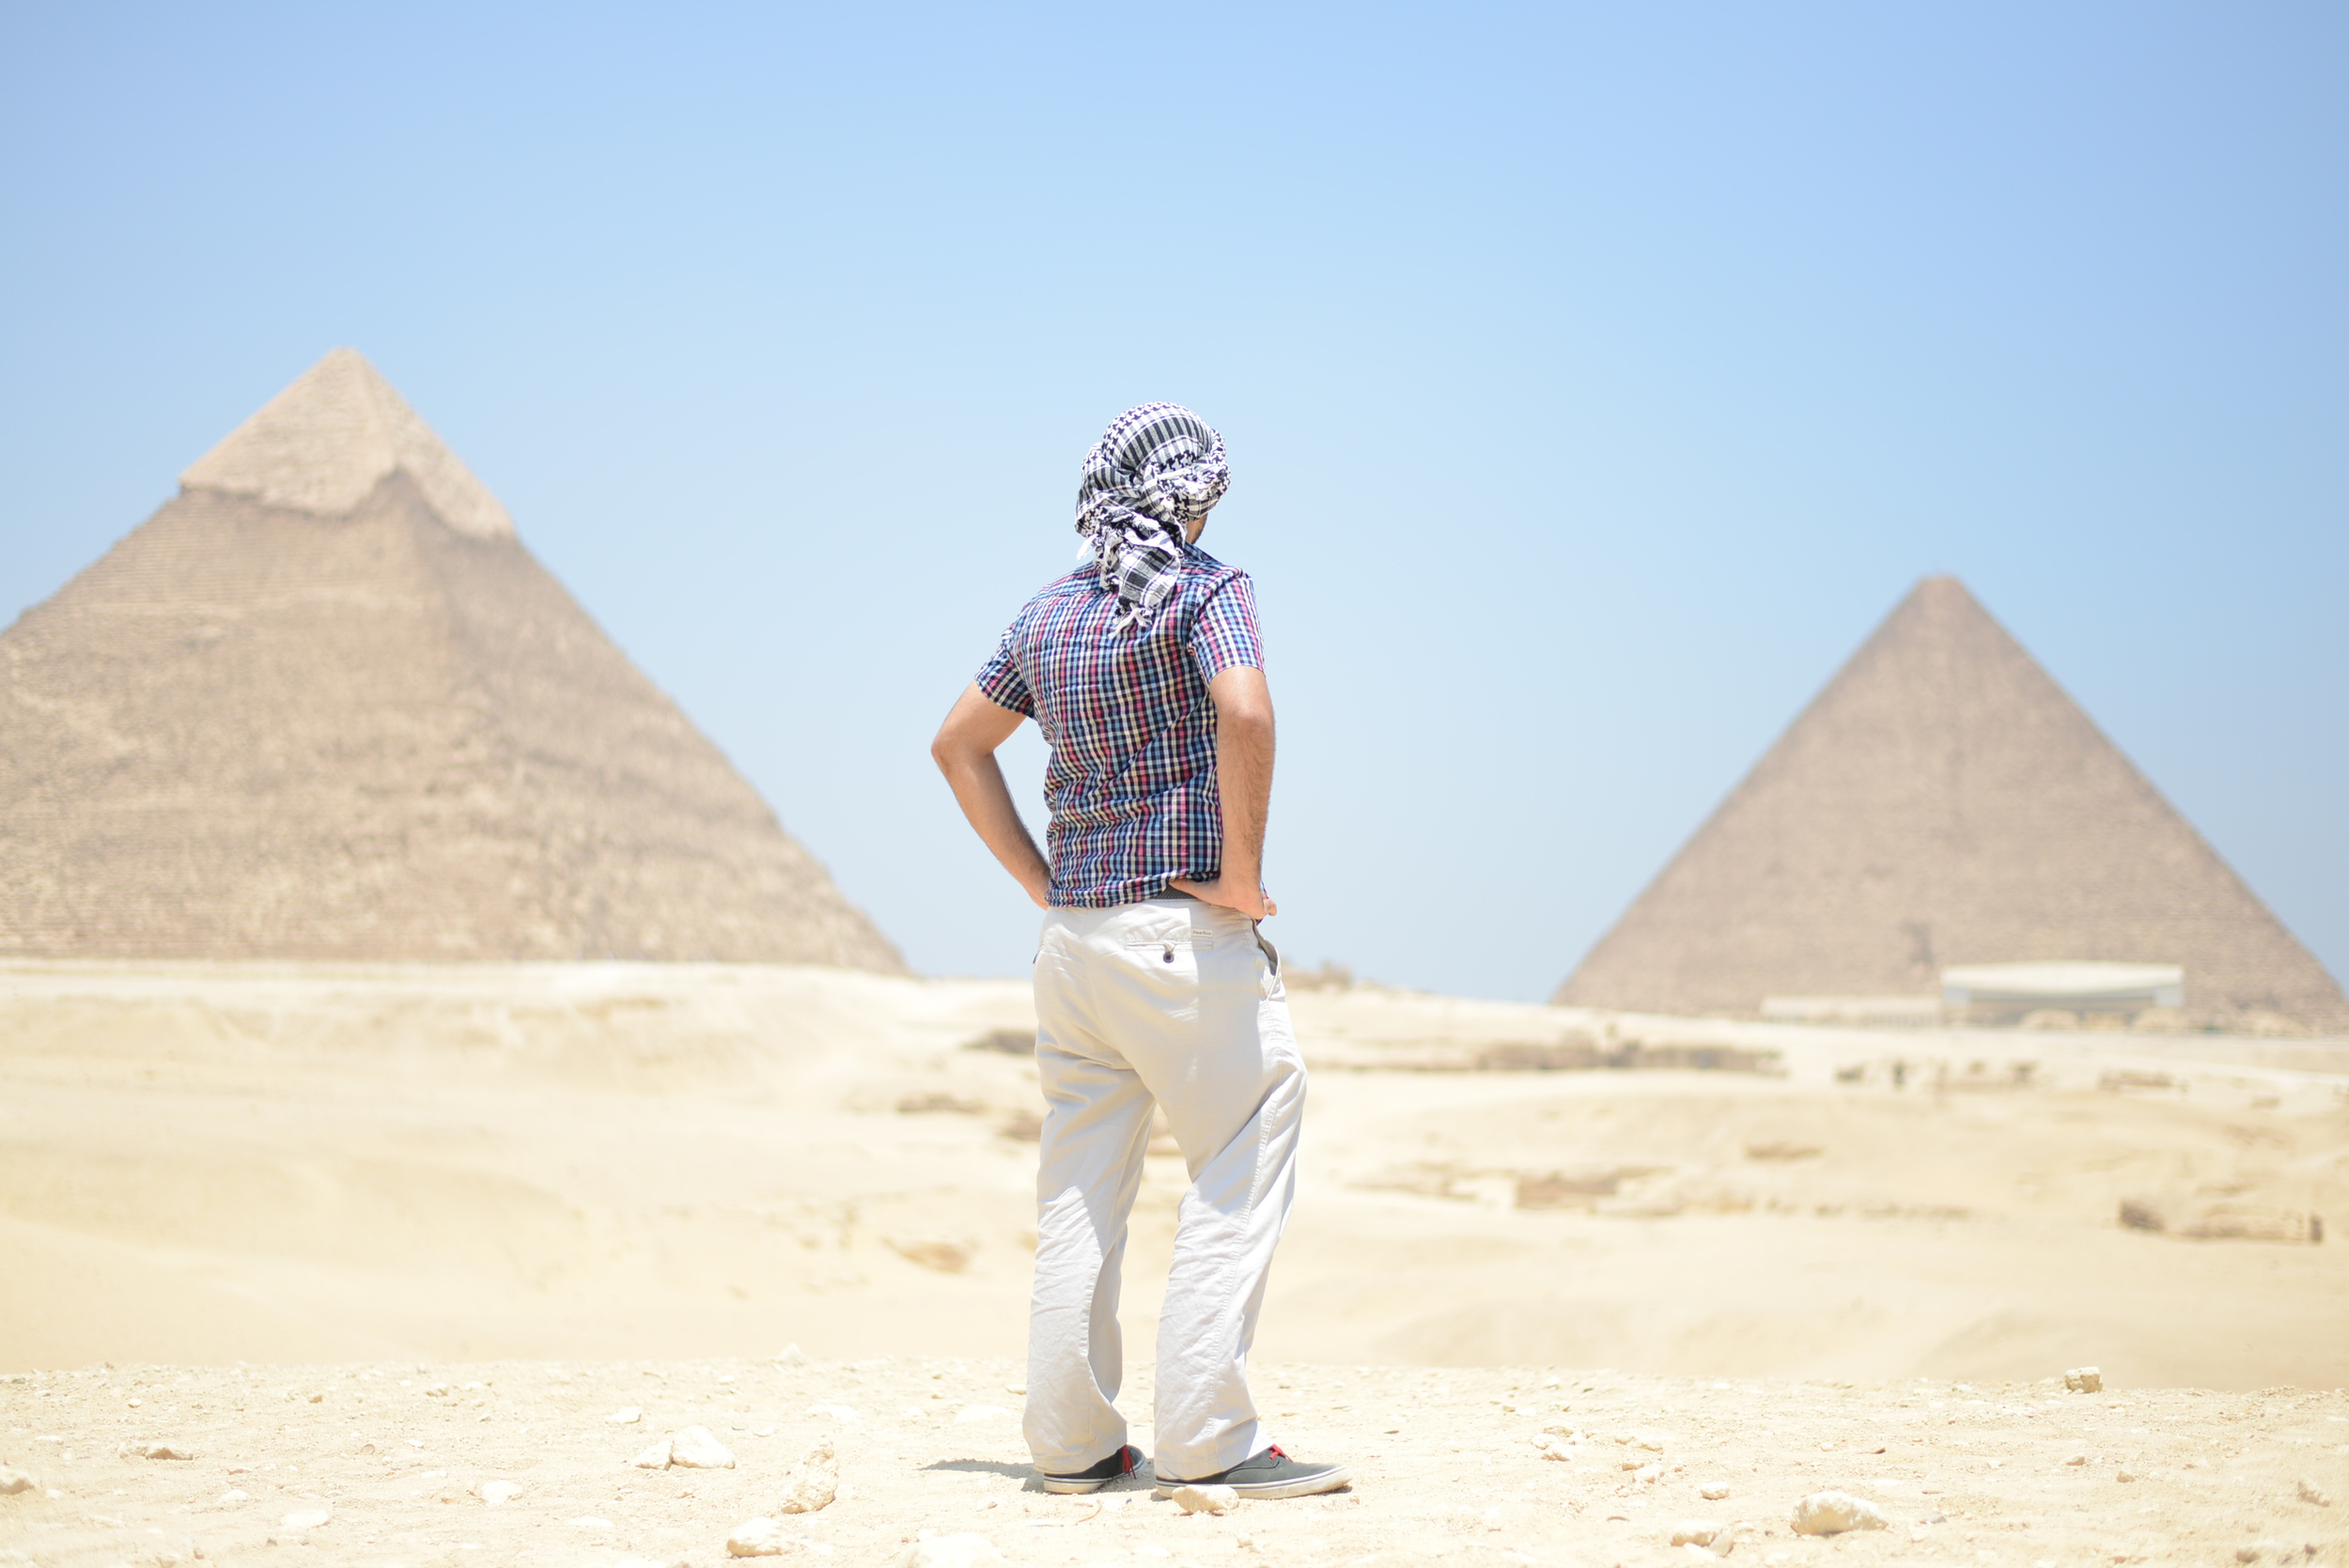 pyramids - published